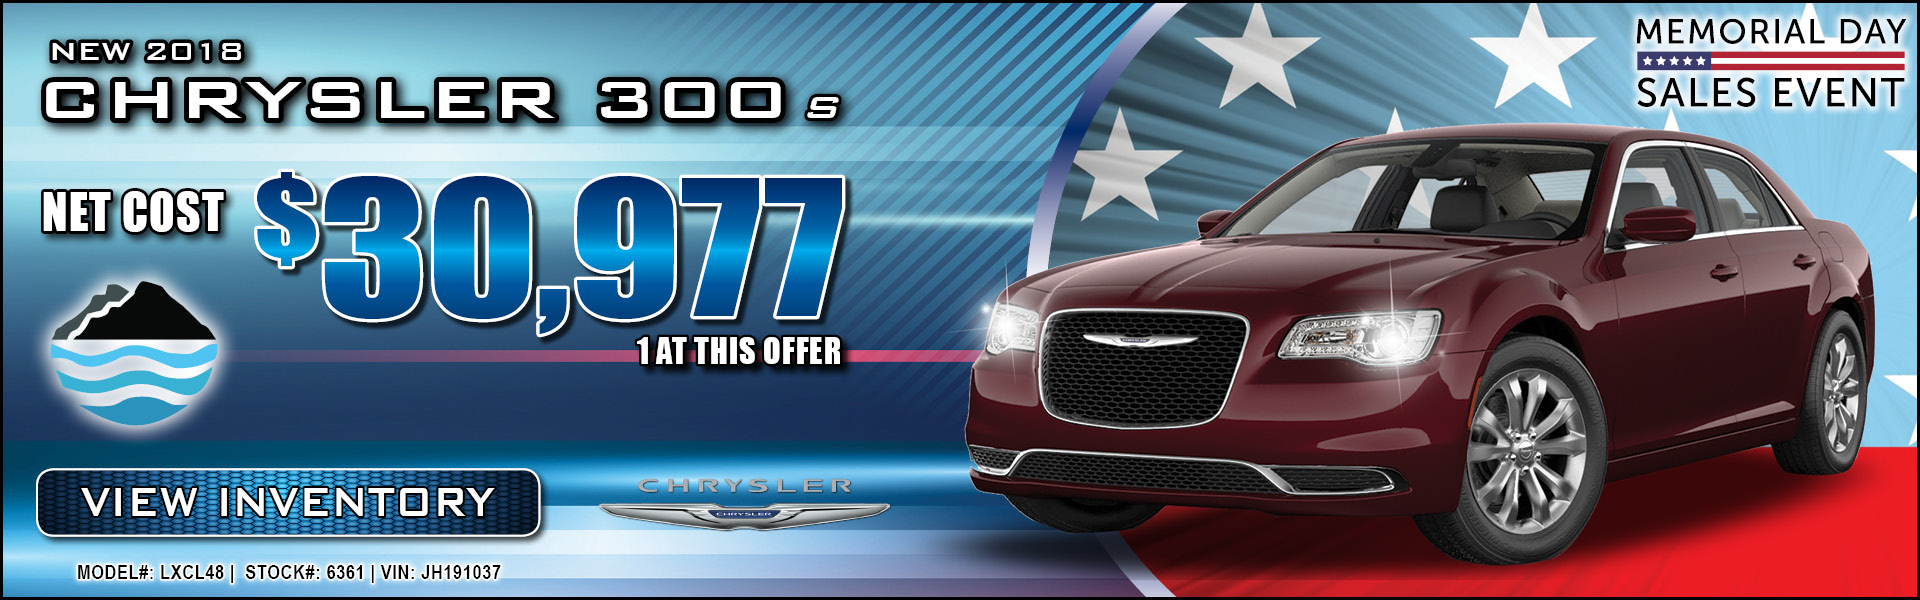 Chrysler 300 $30,977